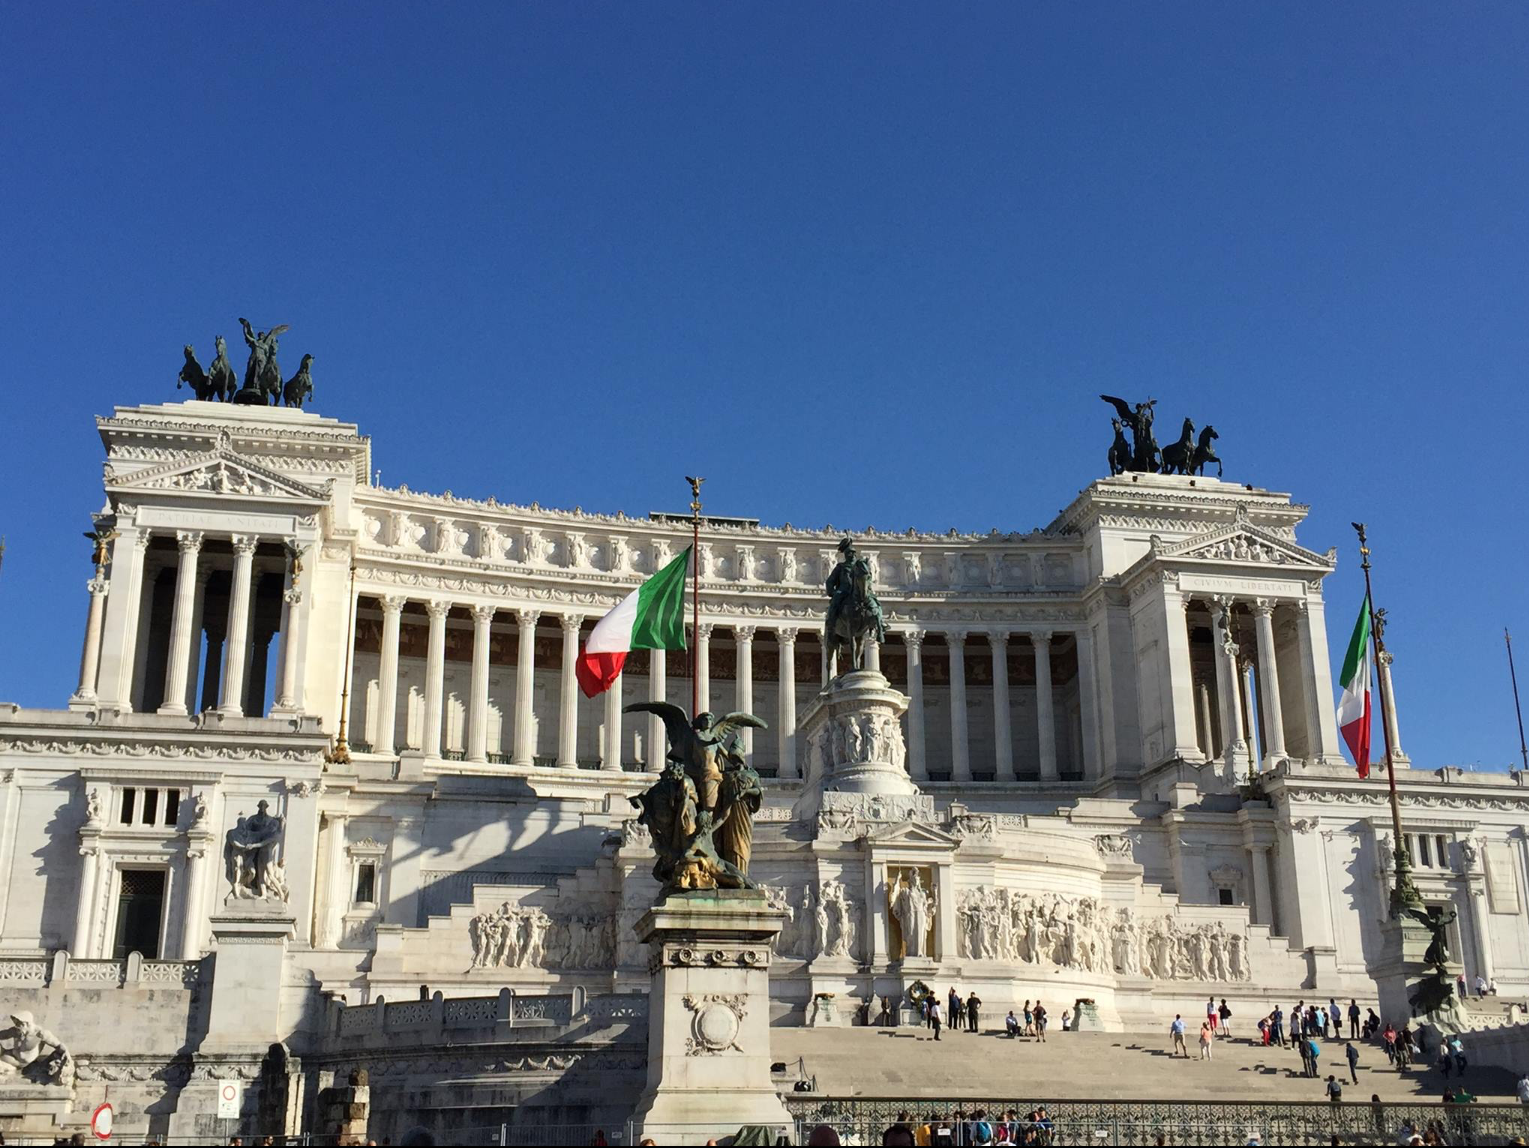 republic_building_rome_italy.png